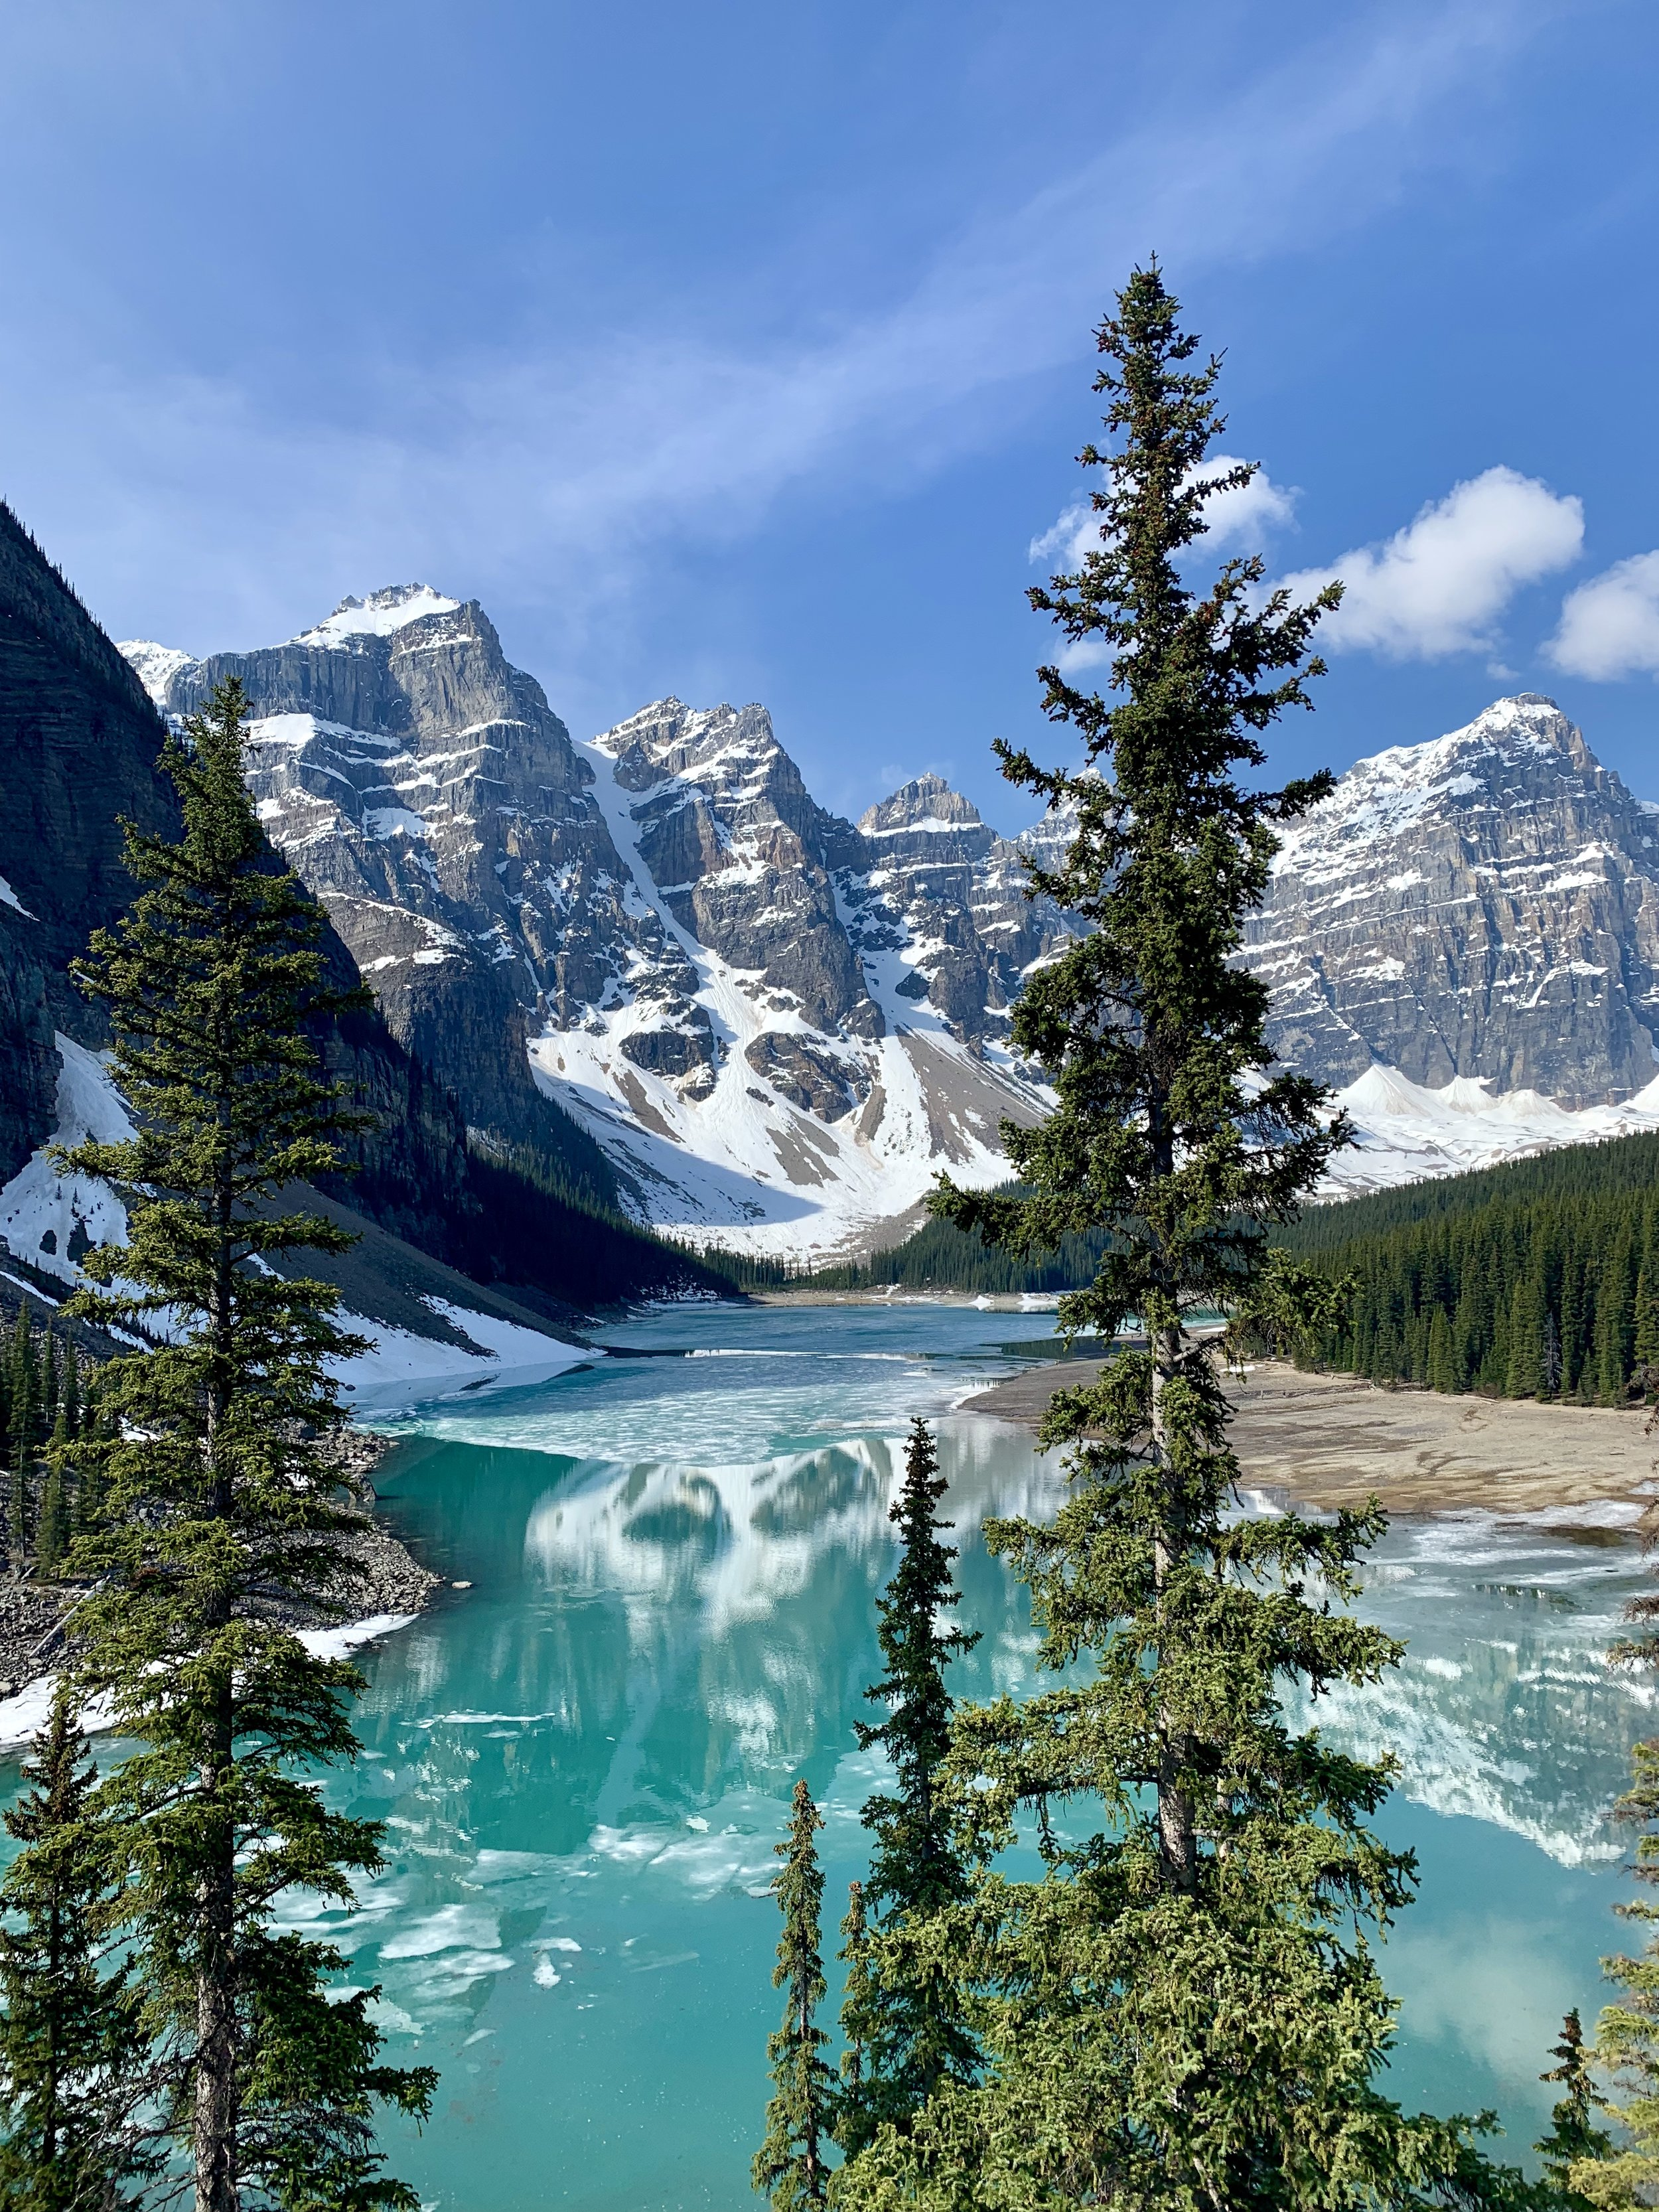 Lake Moraine - So much inspiration in this breathtaking place!